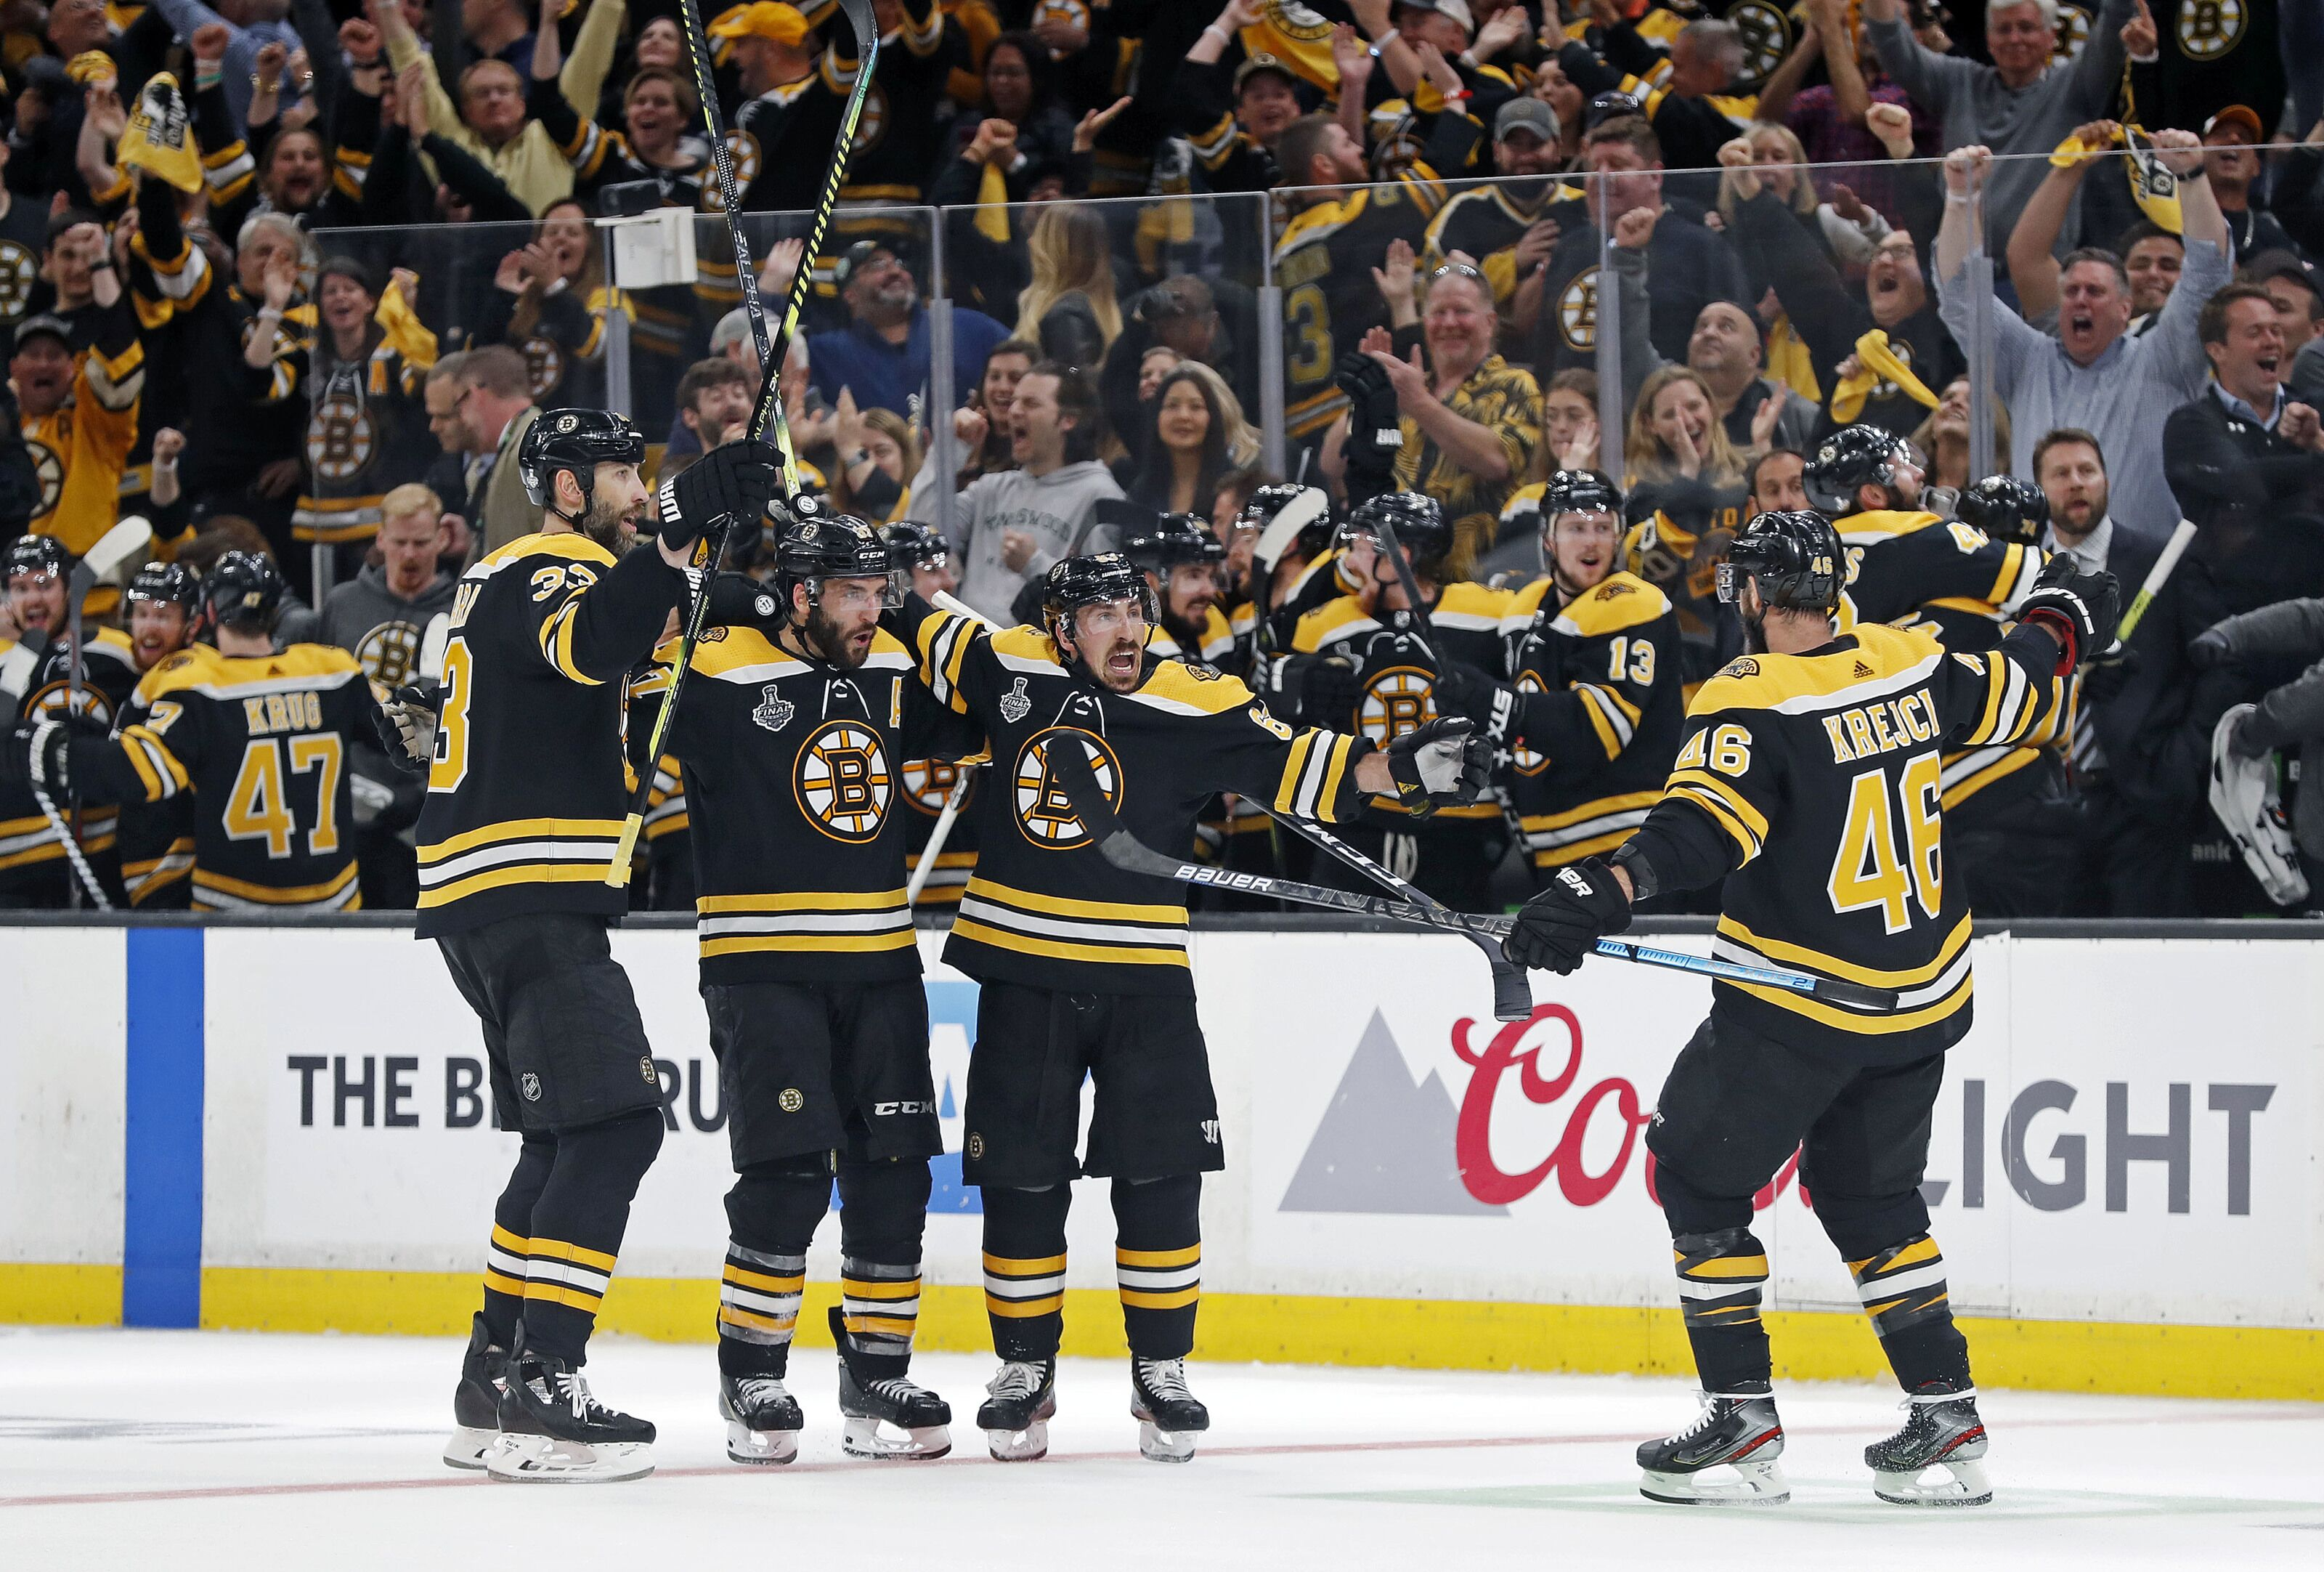 Boston Bruins: Just how long can this core group keep going?